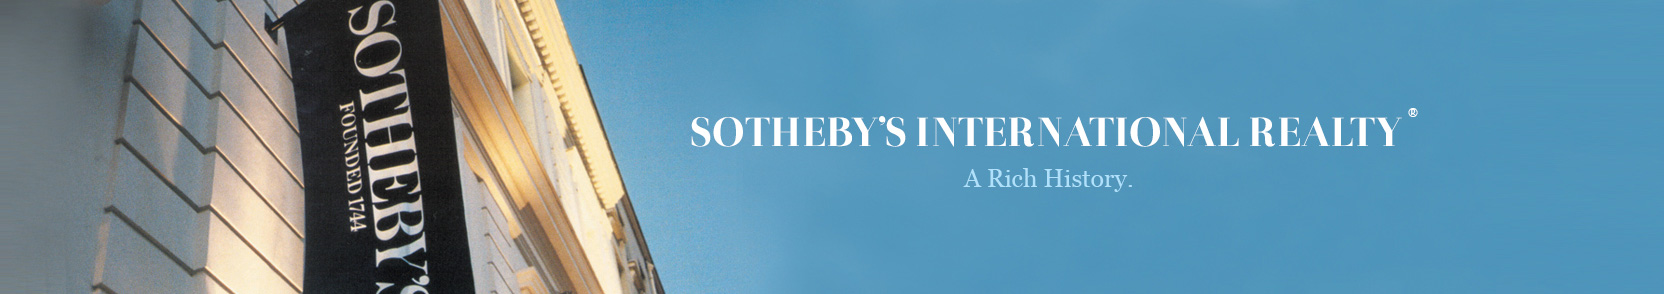 Sotheby's International Realty: A Rich History